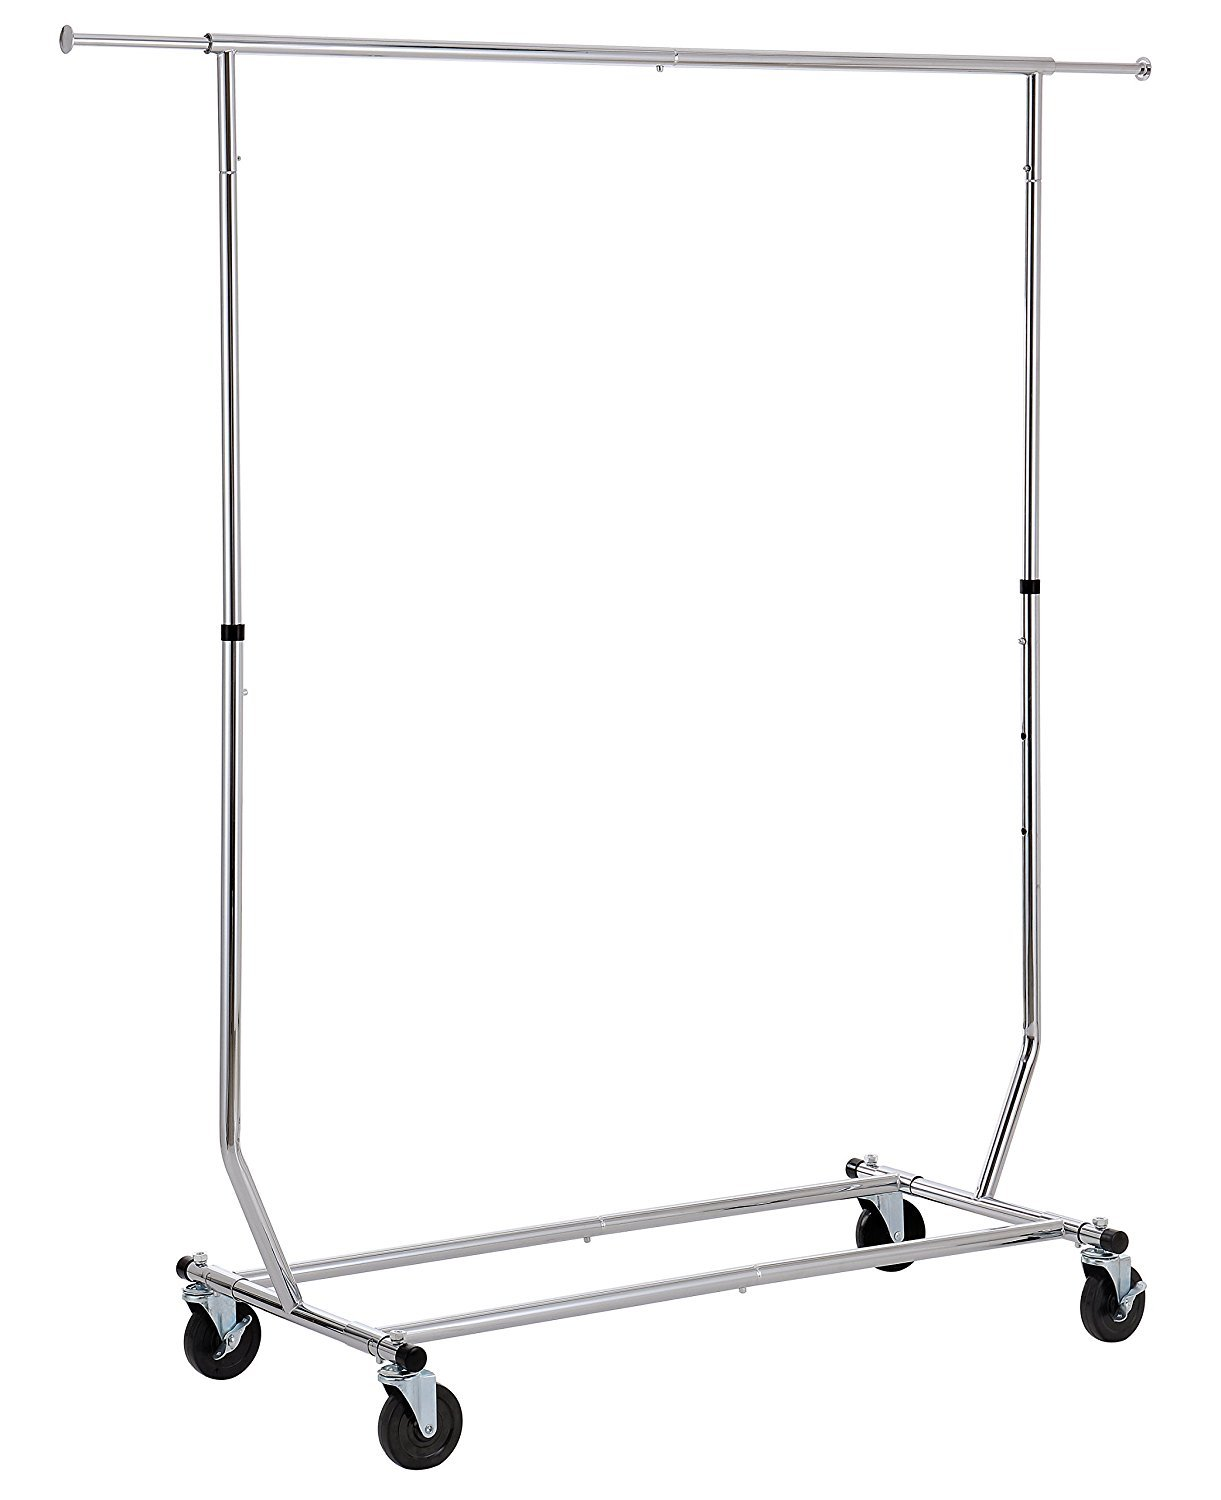 Finnhomy Commercial Grade Adjustable Single Rail Rolling Garment Rack, Heavy Duty Extensible Clothing Hanging Rack with Lockable 4-inch Industrial wheels, Chrome F20HKSHC7007